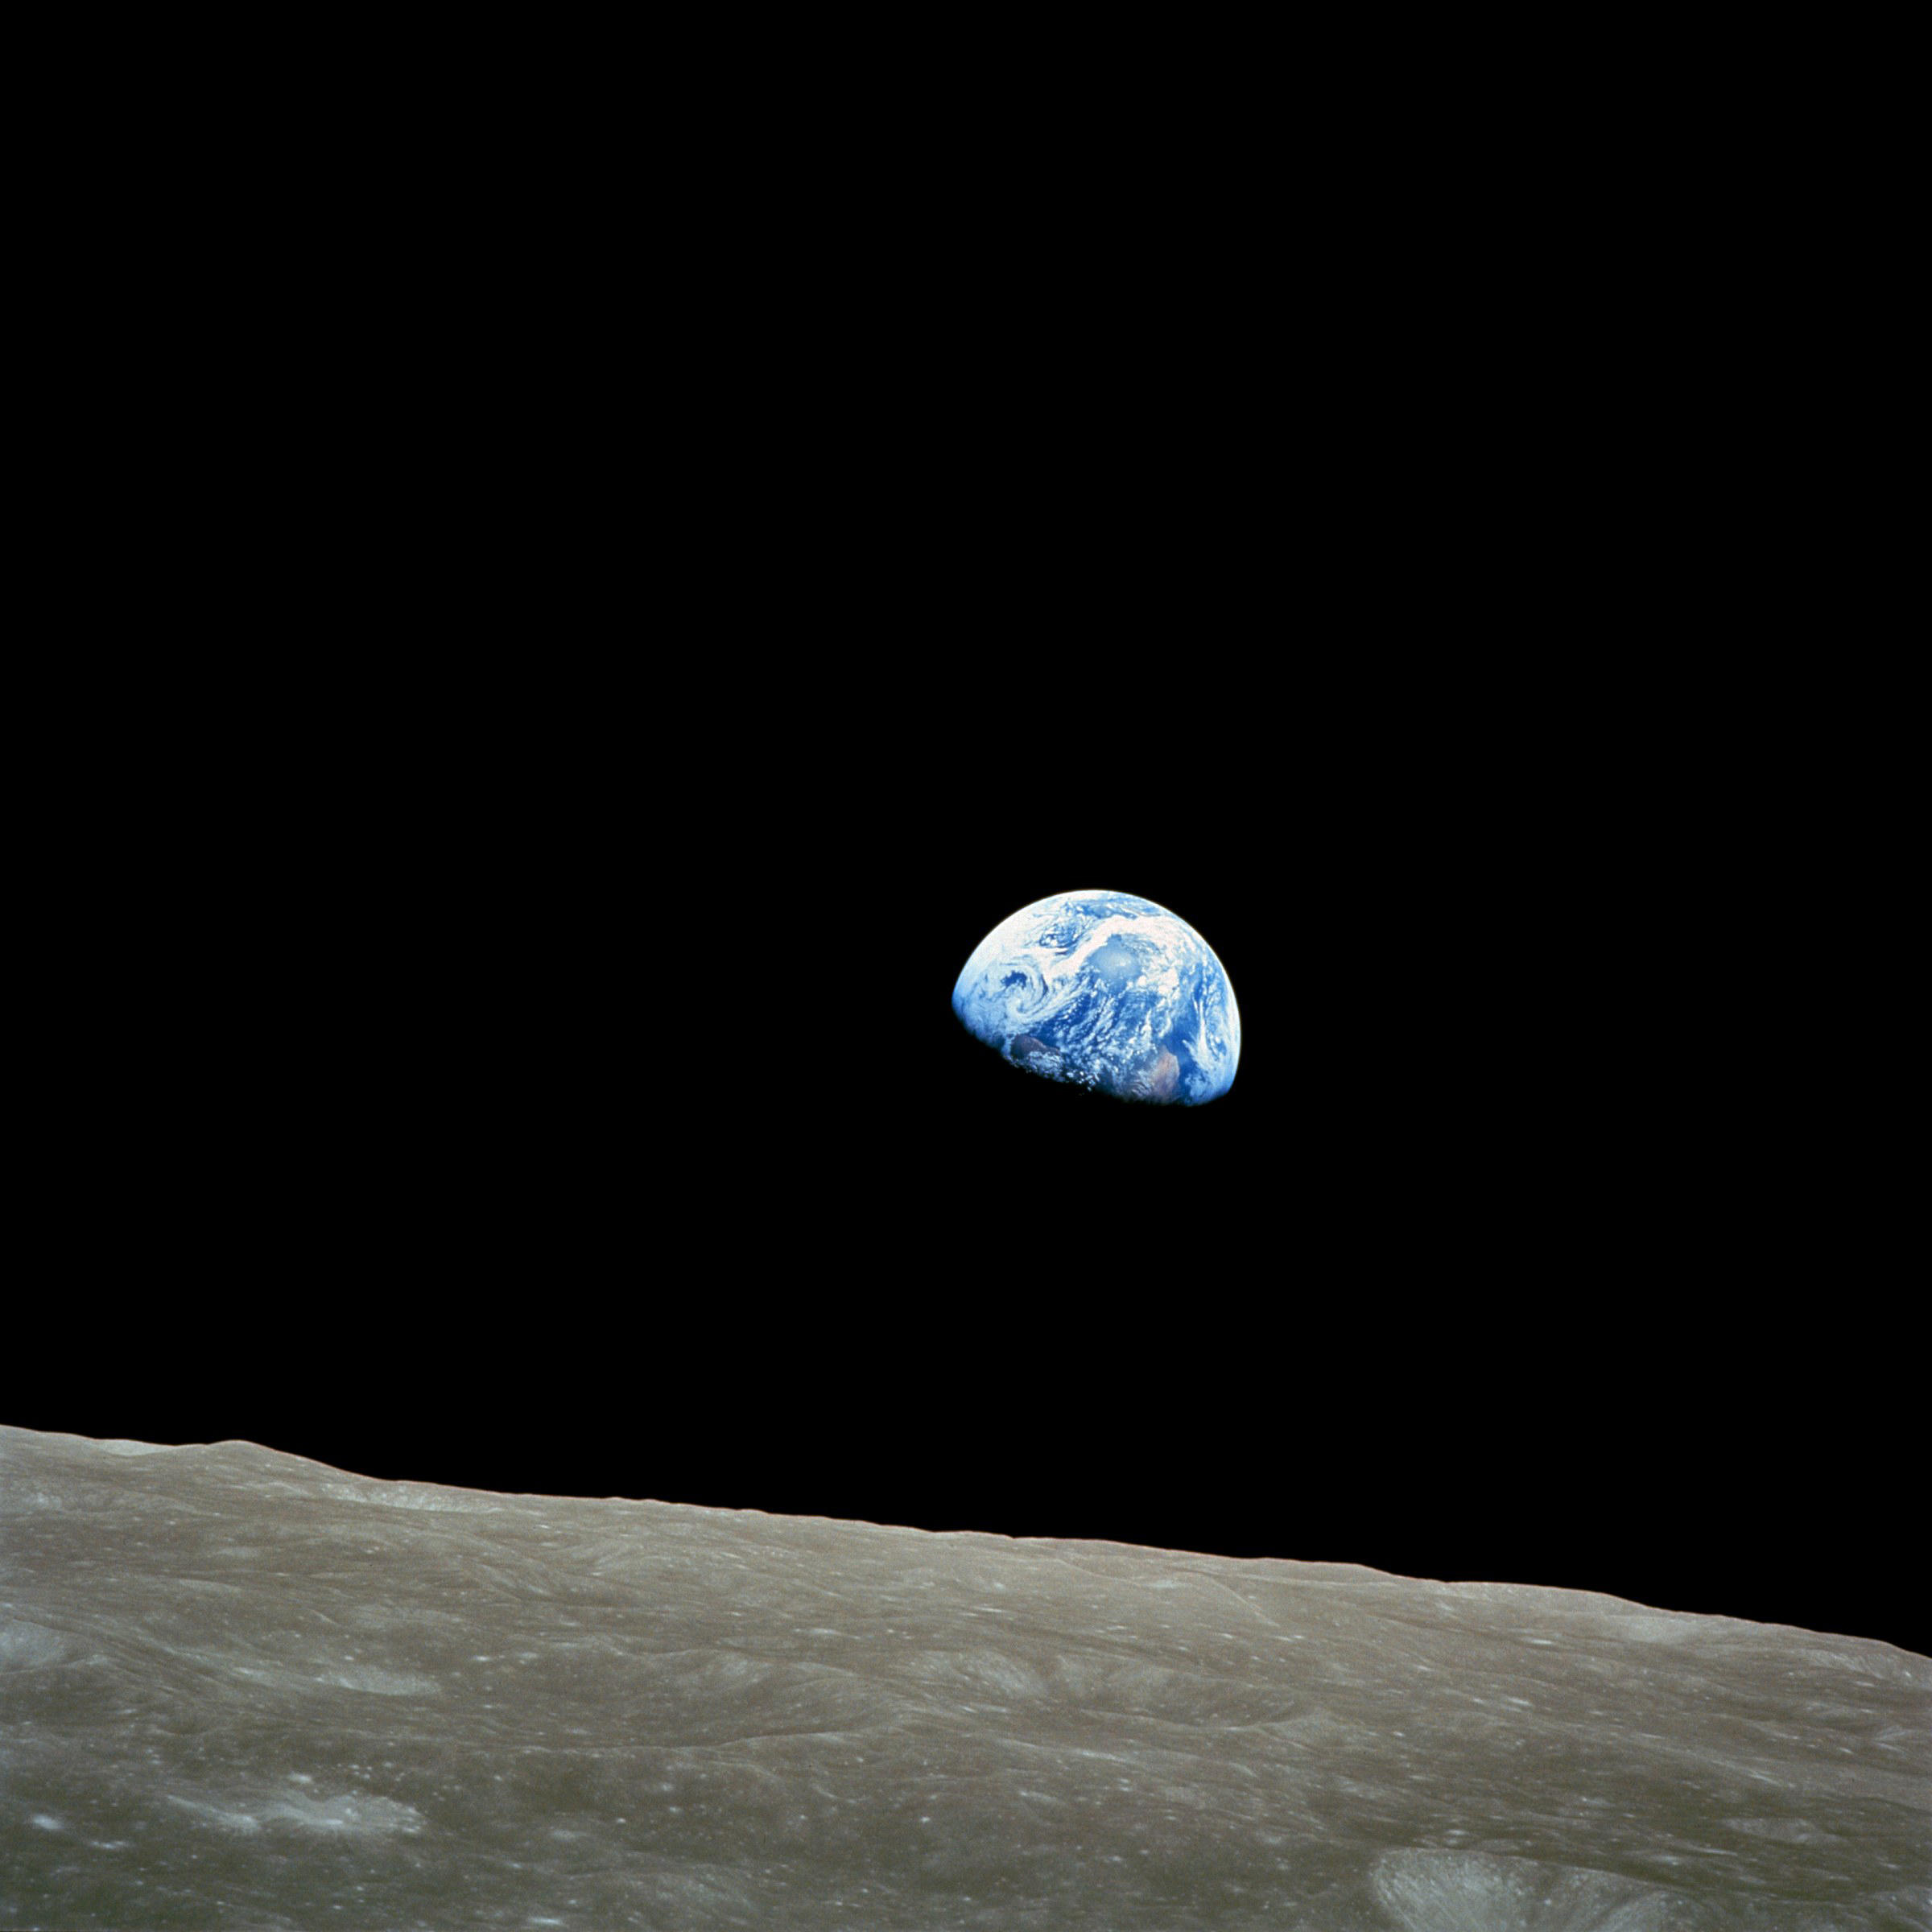 """Exactly 50 years ago today — on December 21, 1968 — NASA launched the Apollo 8 spacecraft, which sent the first humans out of low Earth orbit and around the moon. The three-astronaut crew took 68 hours (nearly three days) to reach the Moon, and on Christmas Eve, Astronaut Bill Anders pointed his customized Hasselbad 500 EL camera out the window and captured this amazing photograph, called """"Earthrise"""". This photograph speaks to our mission here at Daily Overview; to give everyone a chance to appreciate our home in its entirety and reflect on its beauty and fragility all at once. Thank you for joining us on this journey!  Source imagery: NASA - National Aeronautics and Space Administration"""